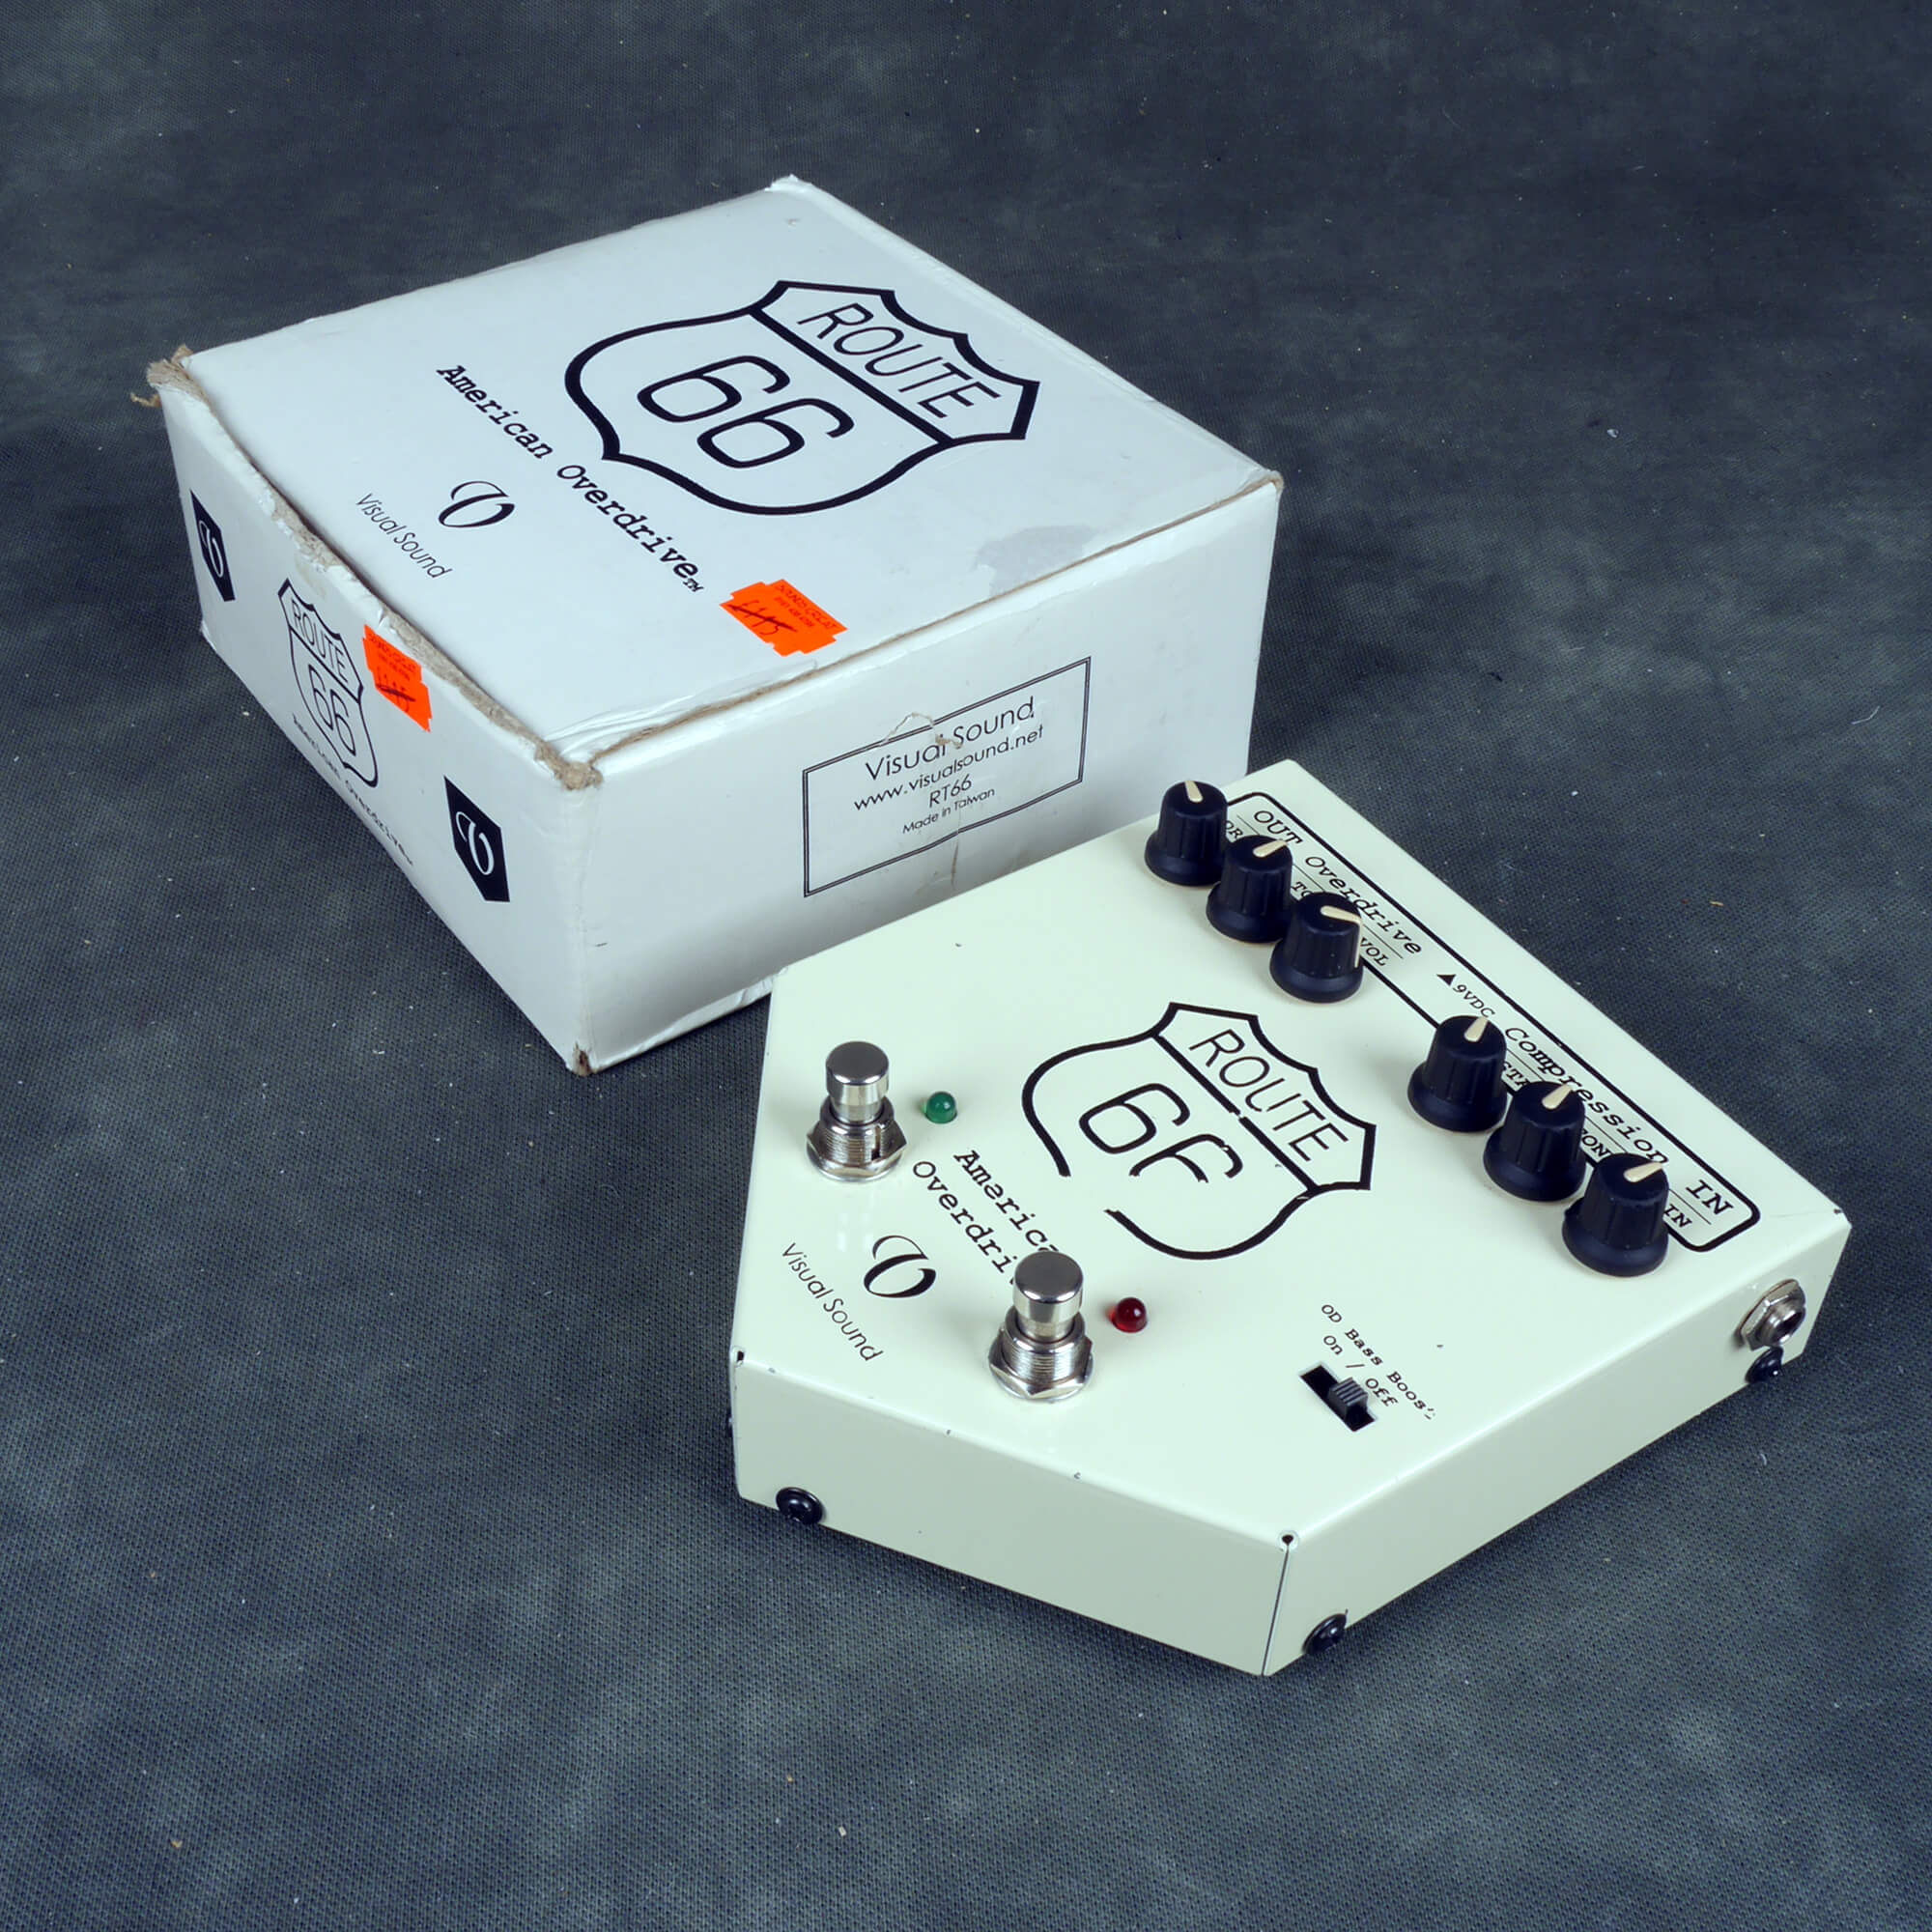 Visual Sound Route 66 Overdrive FX Pedal w/Box - 2nd Hand